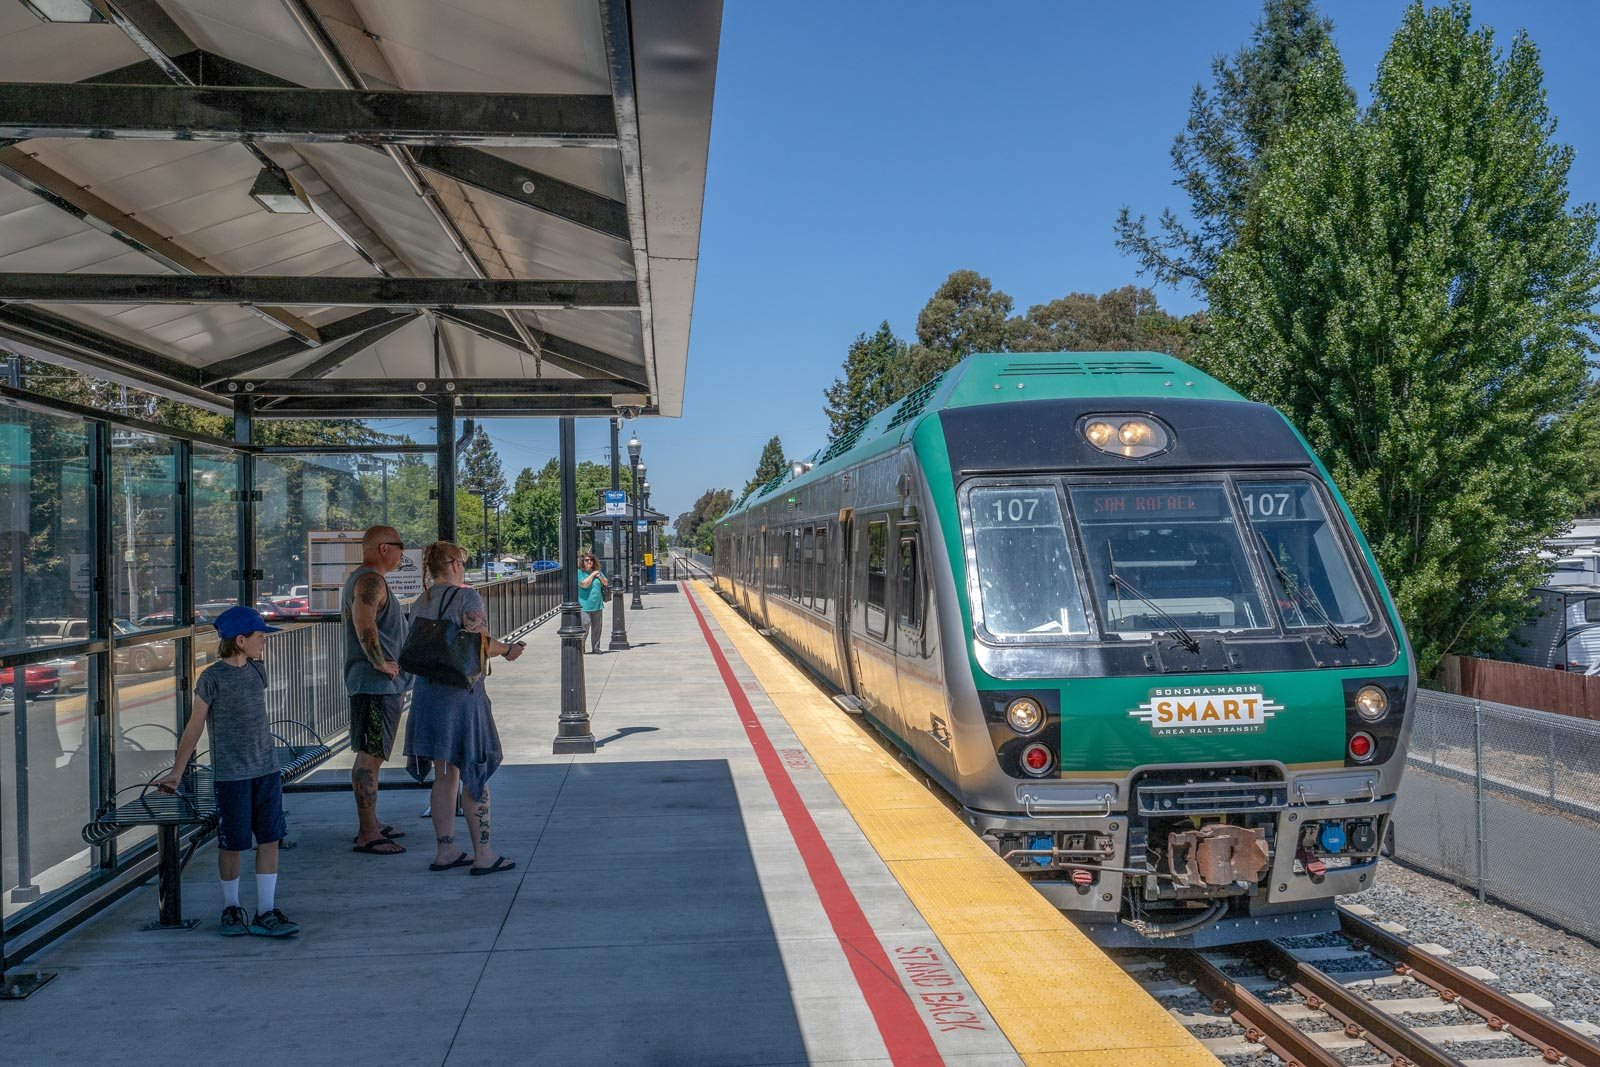 Less than 2 Miles from SMART Rohnert Park Station at Windsor at Redwood Creek, 600 Rohnert Park Expressway West, Rohnert Park